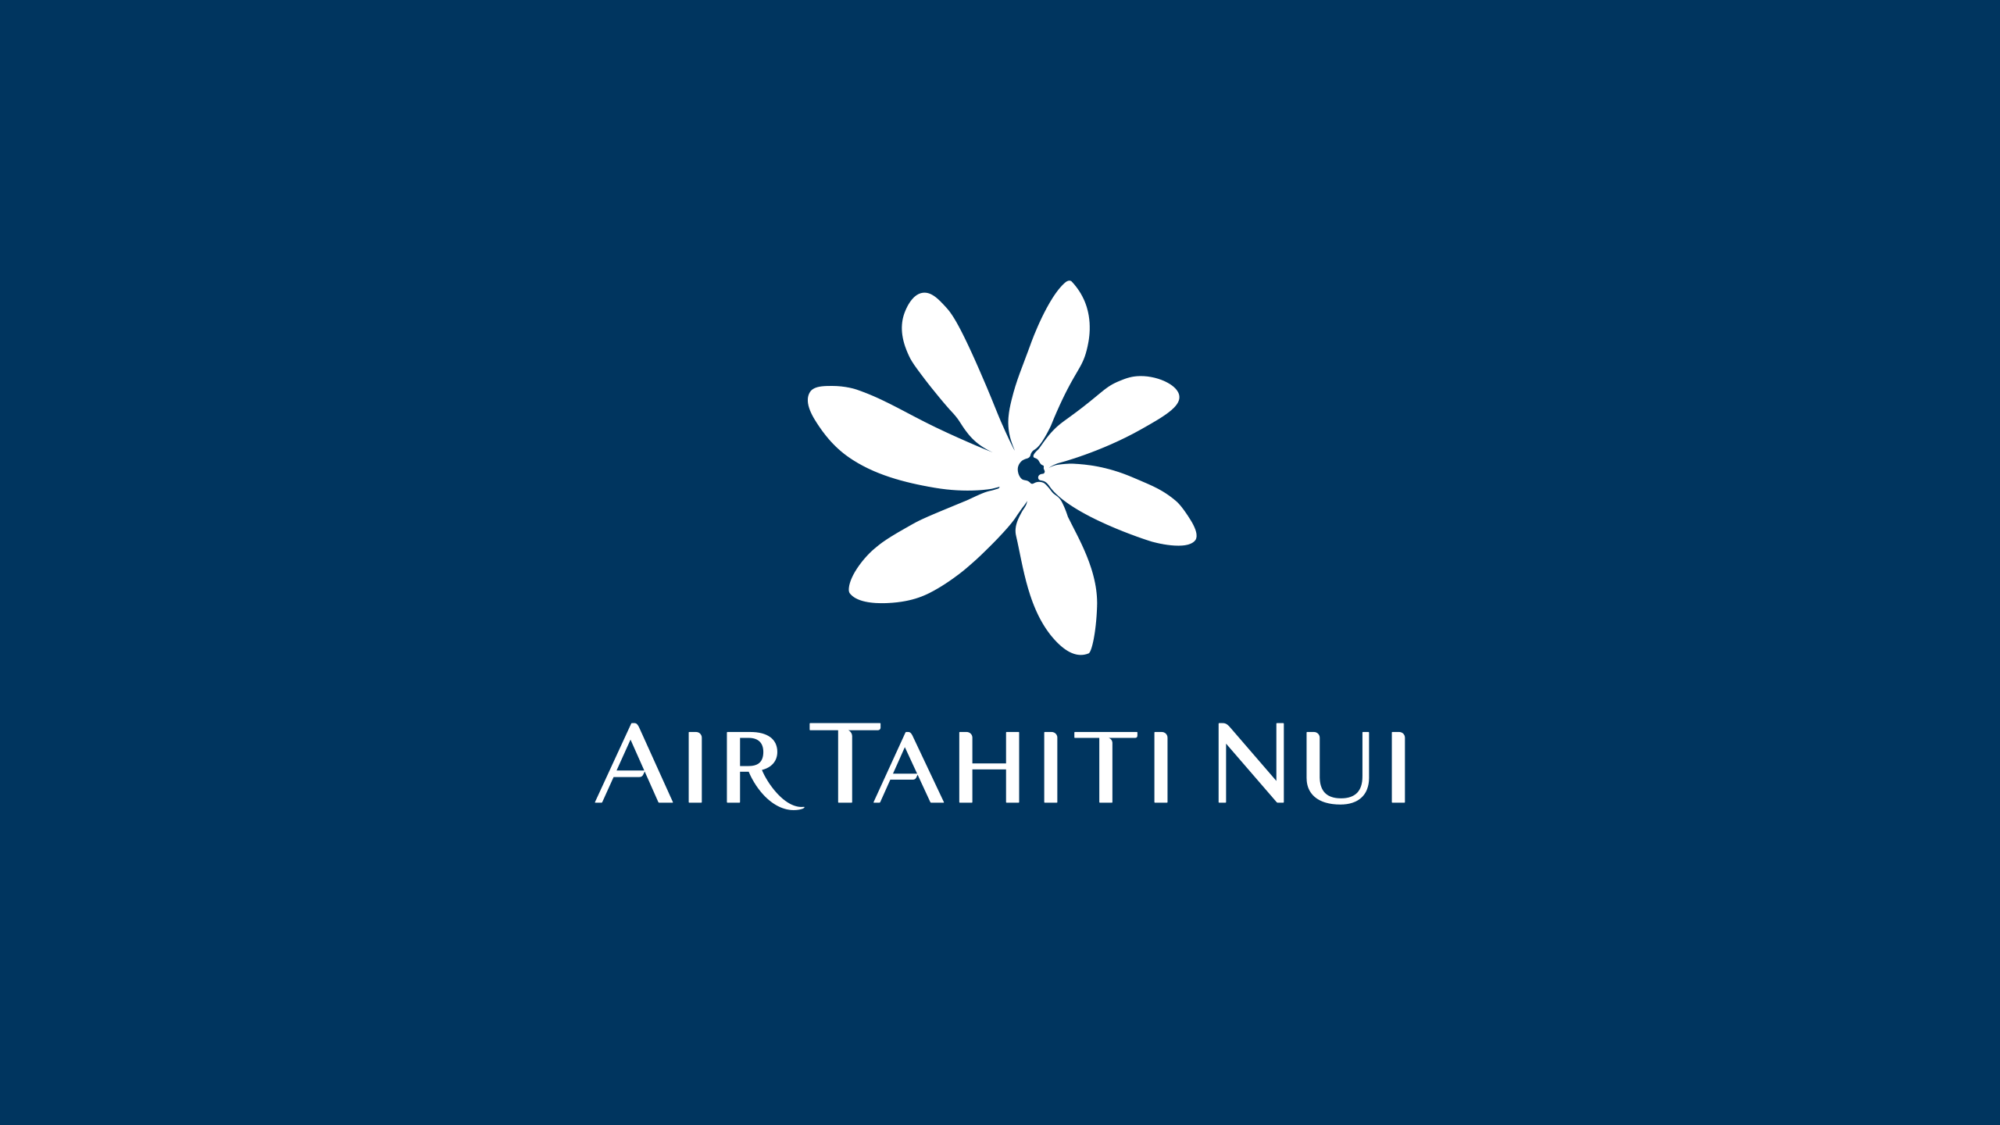 Contacter Air Tahiti NUI : réclamations, réservations, assistance